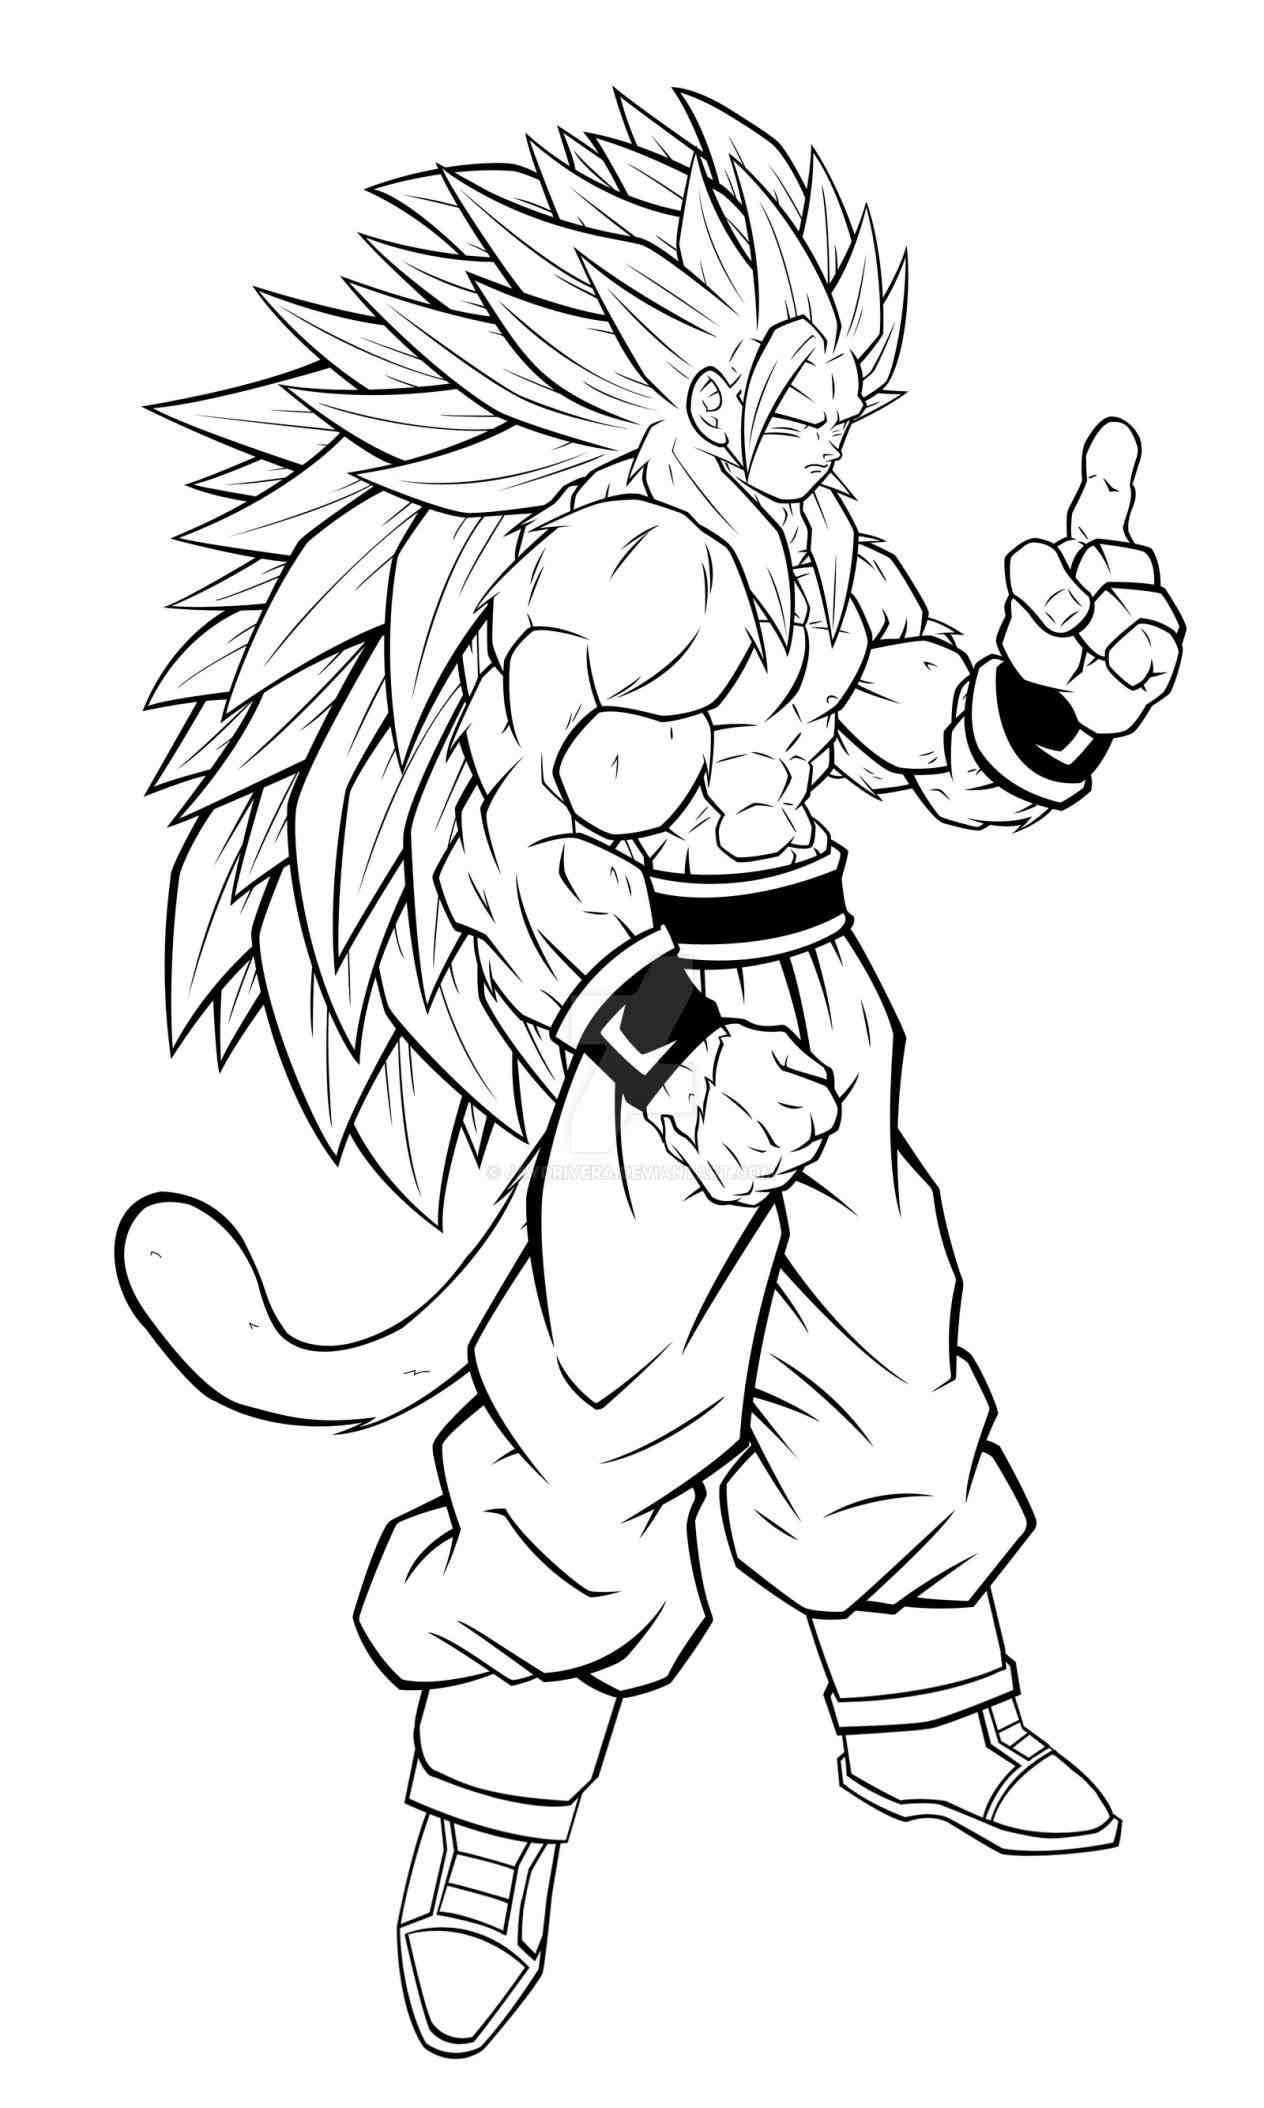 Dragon ball z coloring pages goku super saiyan 5 az for Dbz coloring pages goku